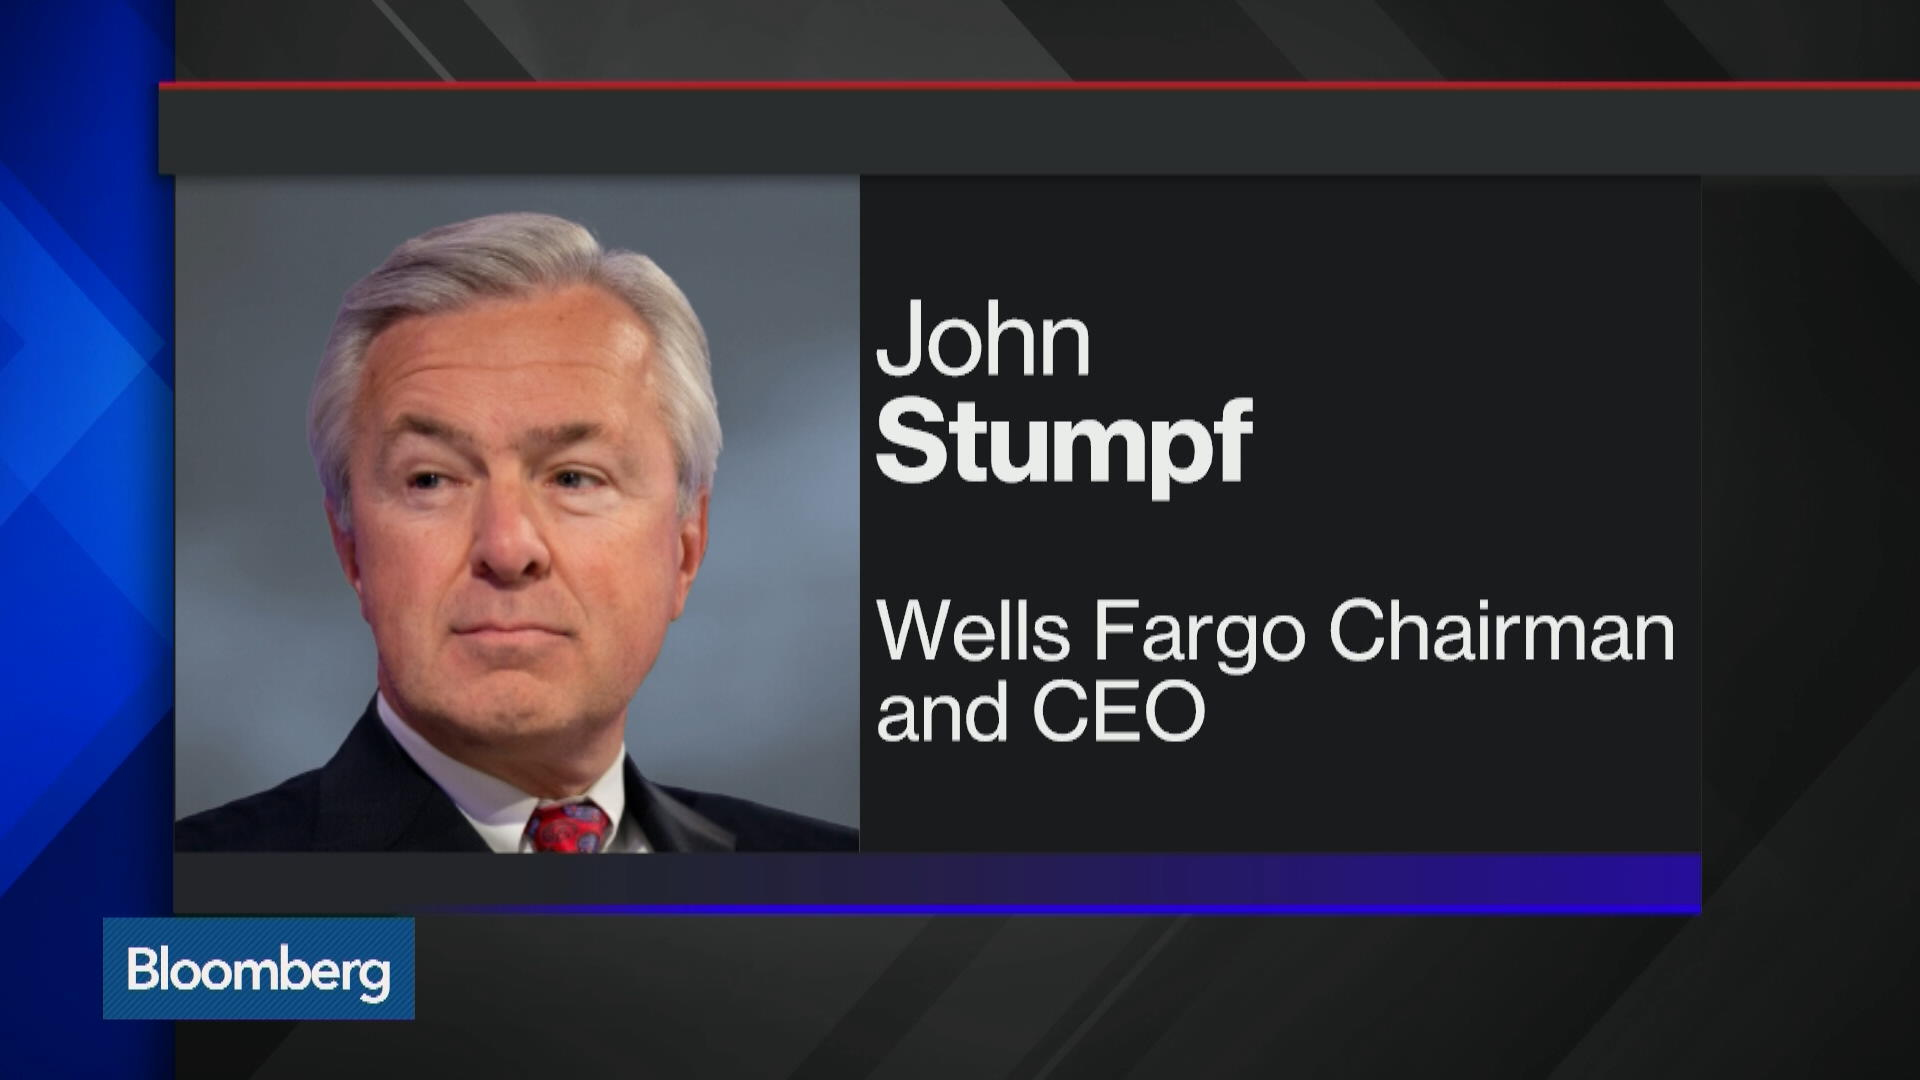 Wells Fargo Ceo Stumpf Faces Senate Grilling Bloomberg